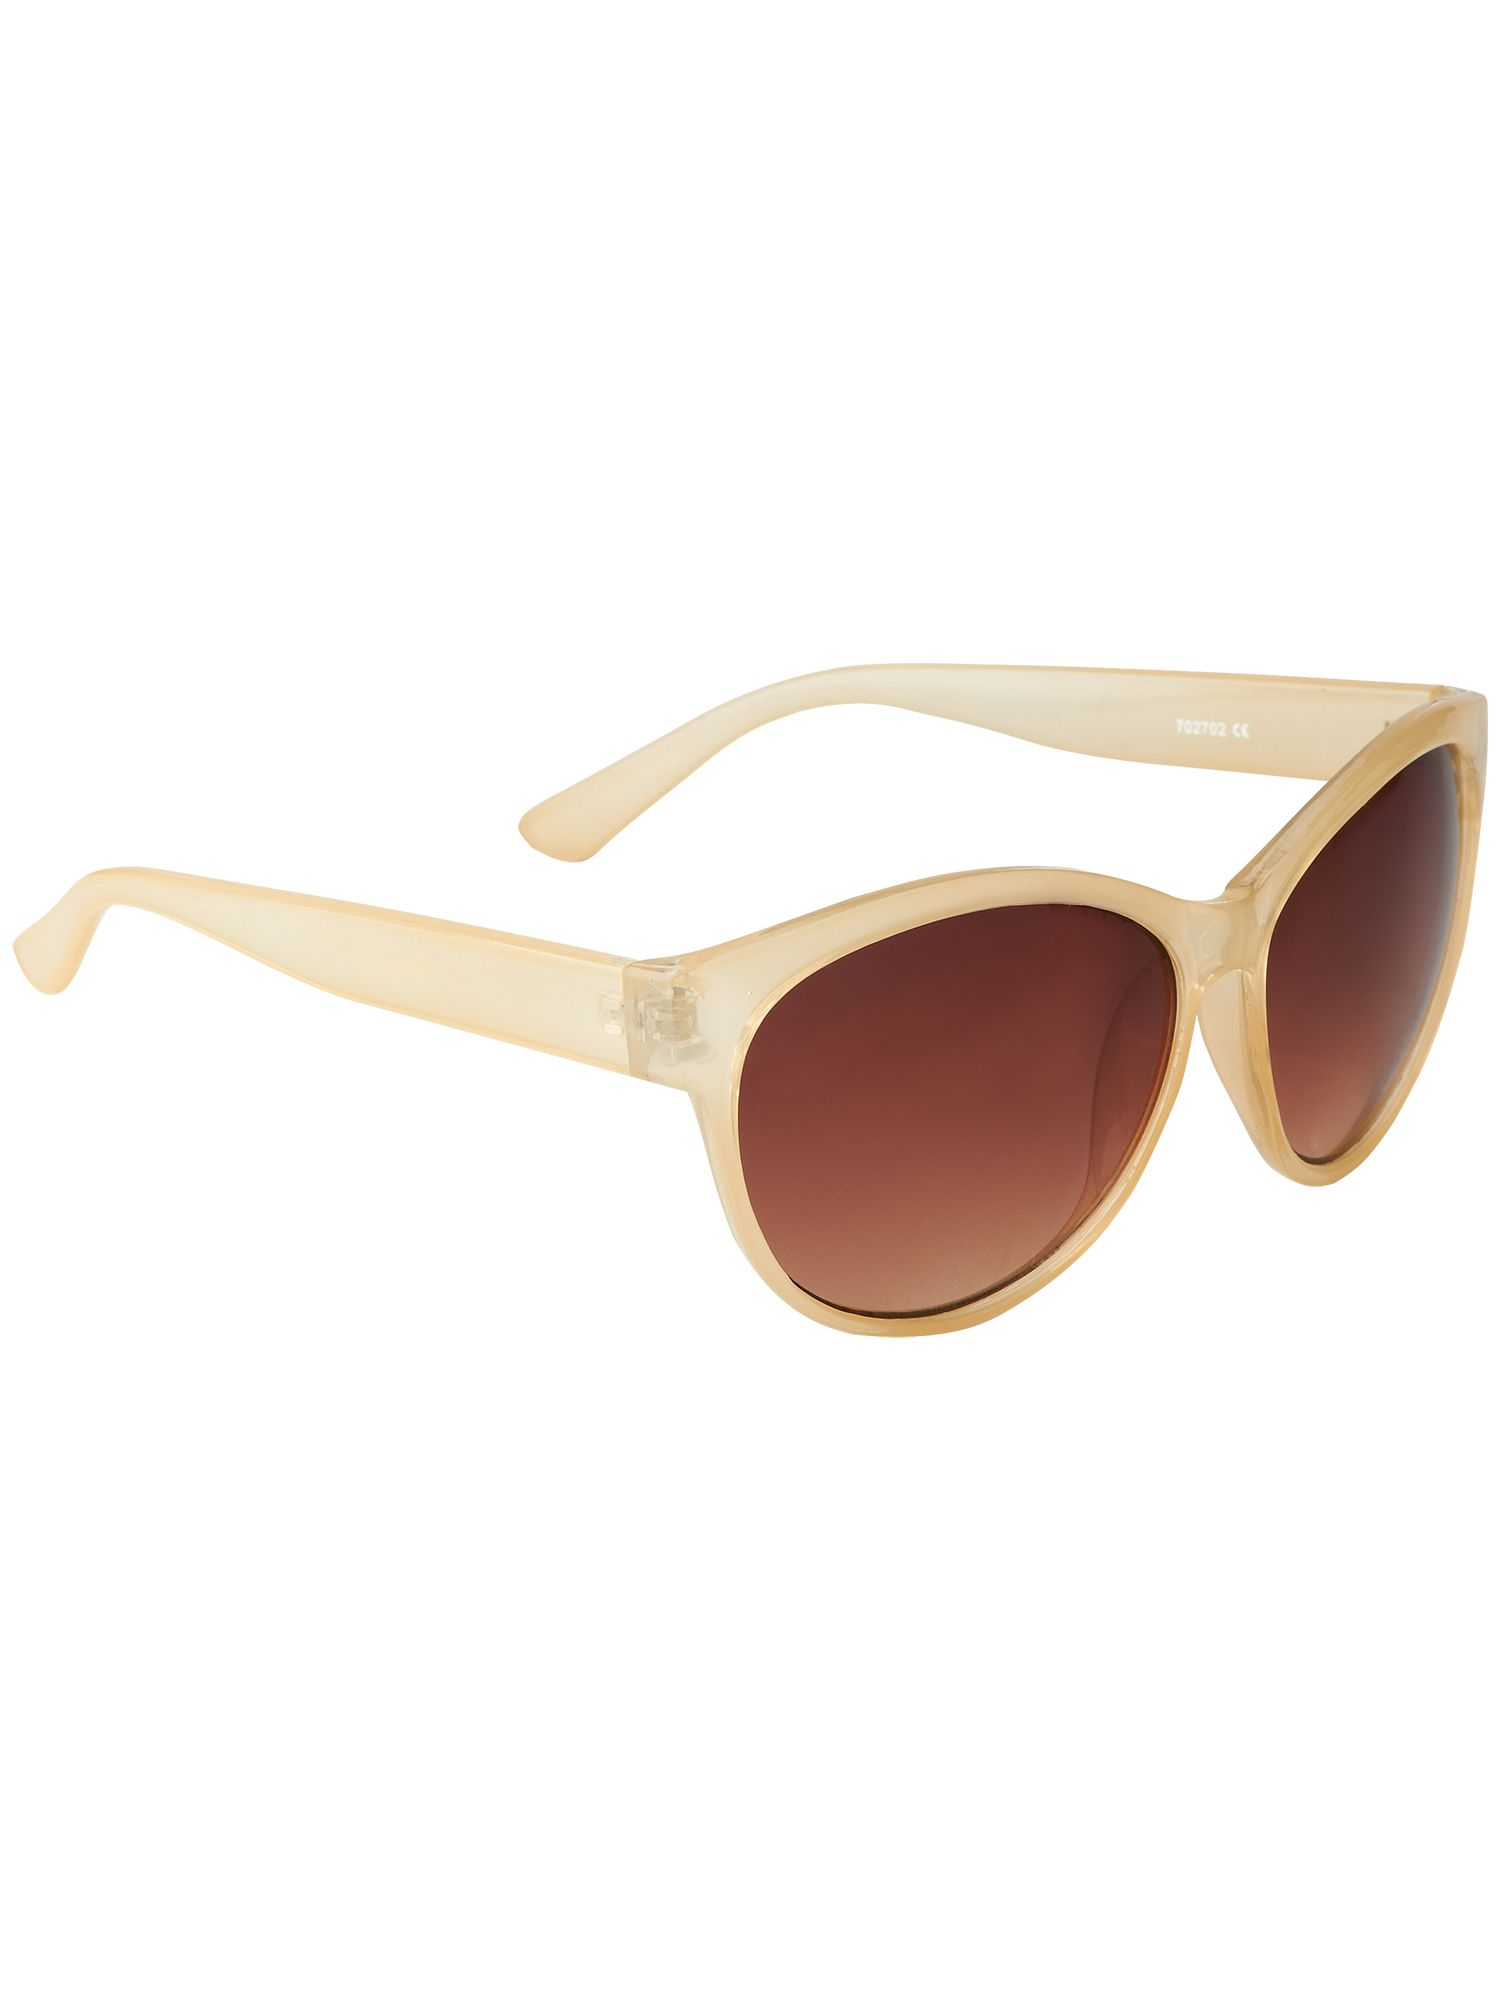 Nola opaque cats eye sunglasses